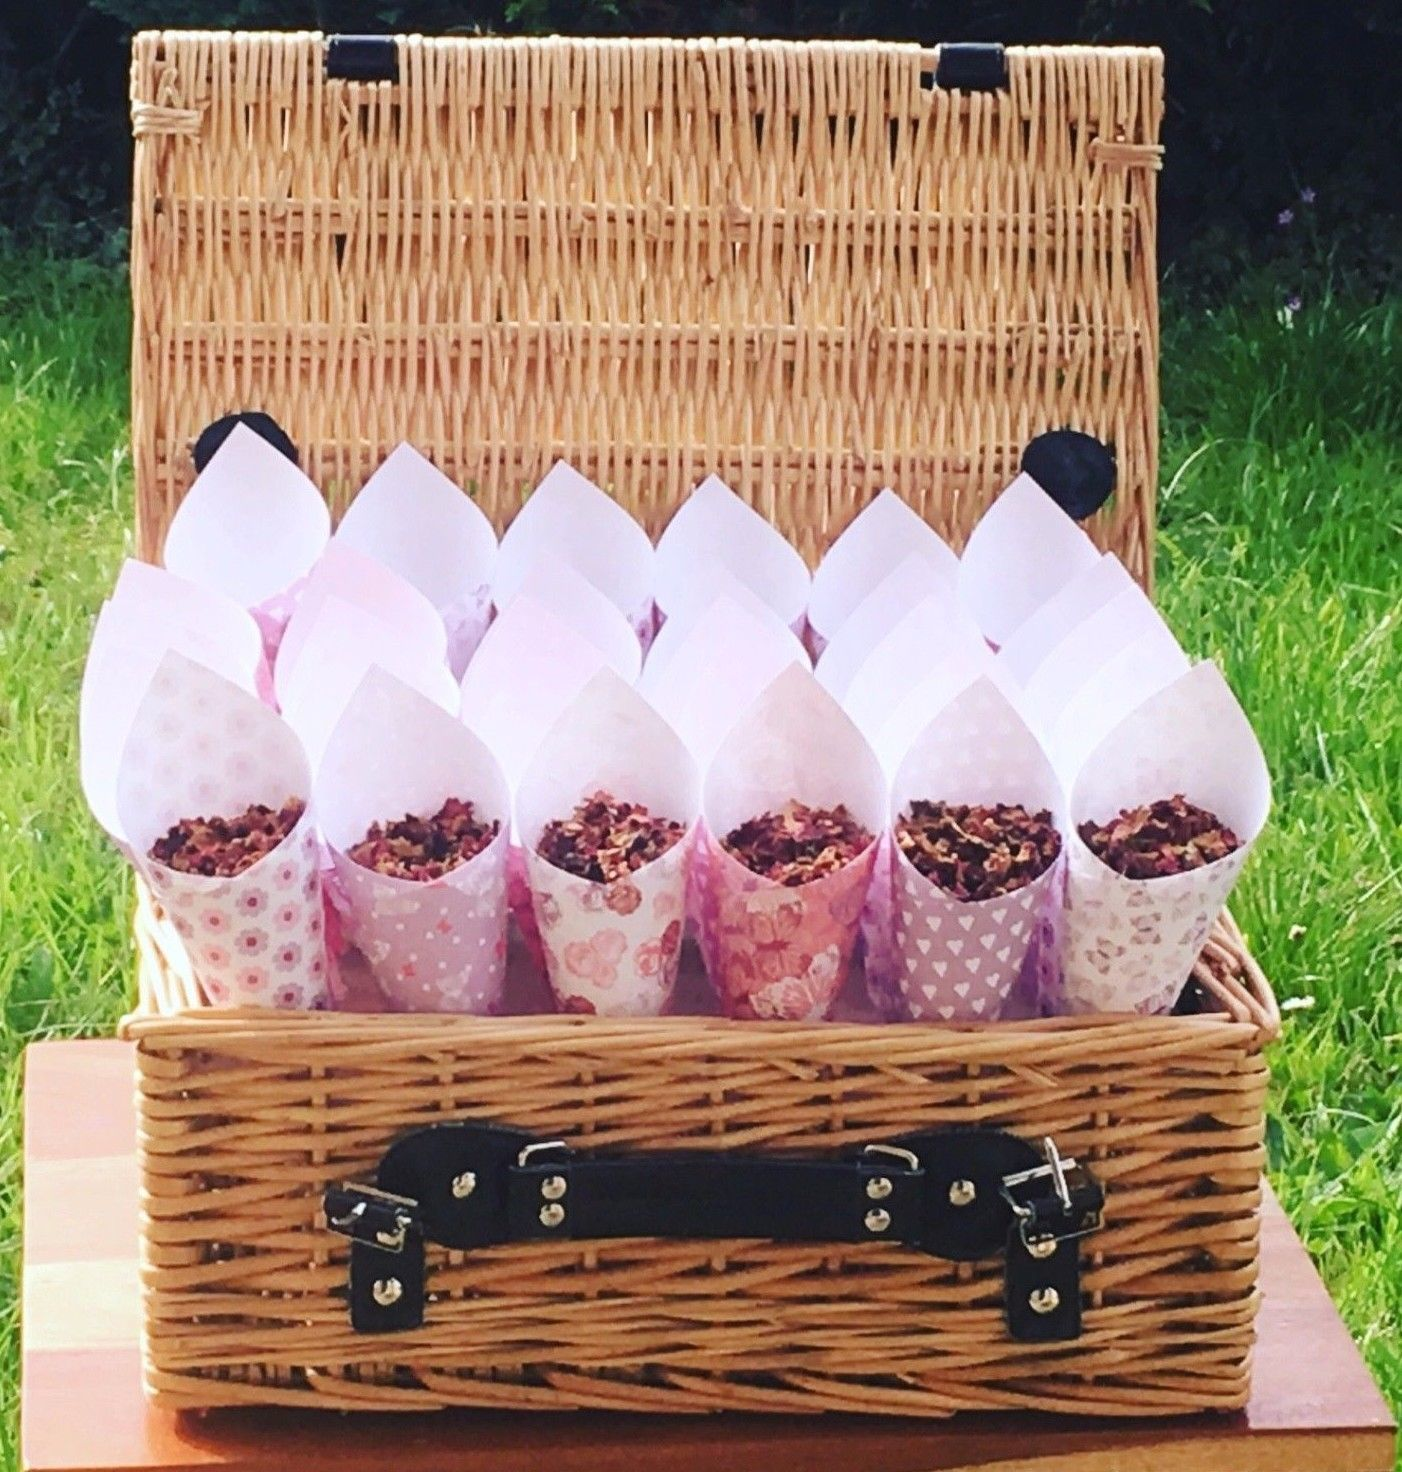 30 SHABBY CHIC CONES IN A BEAUTIFUL WICKER BASKET